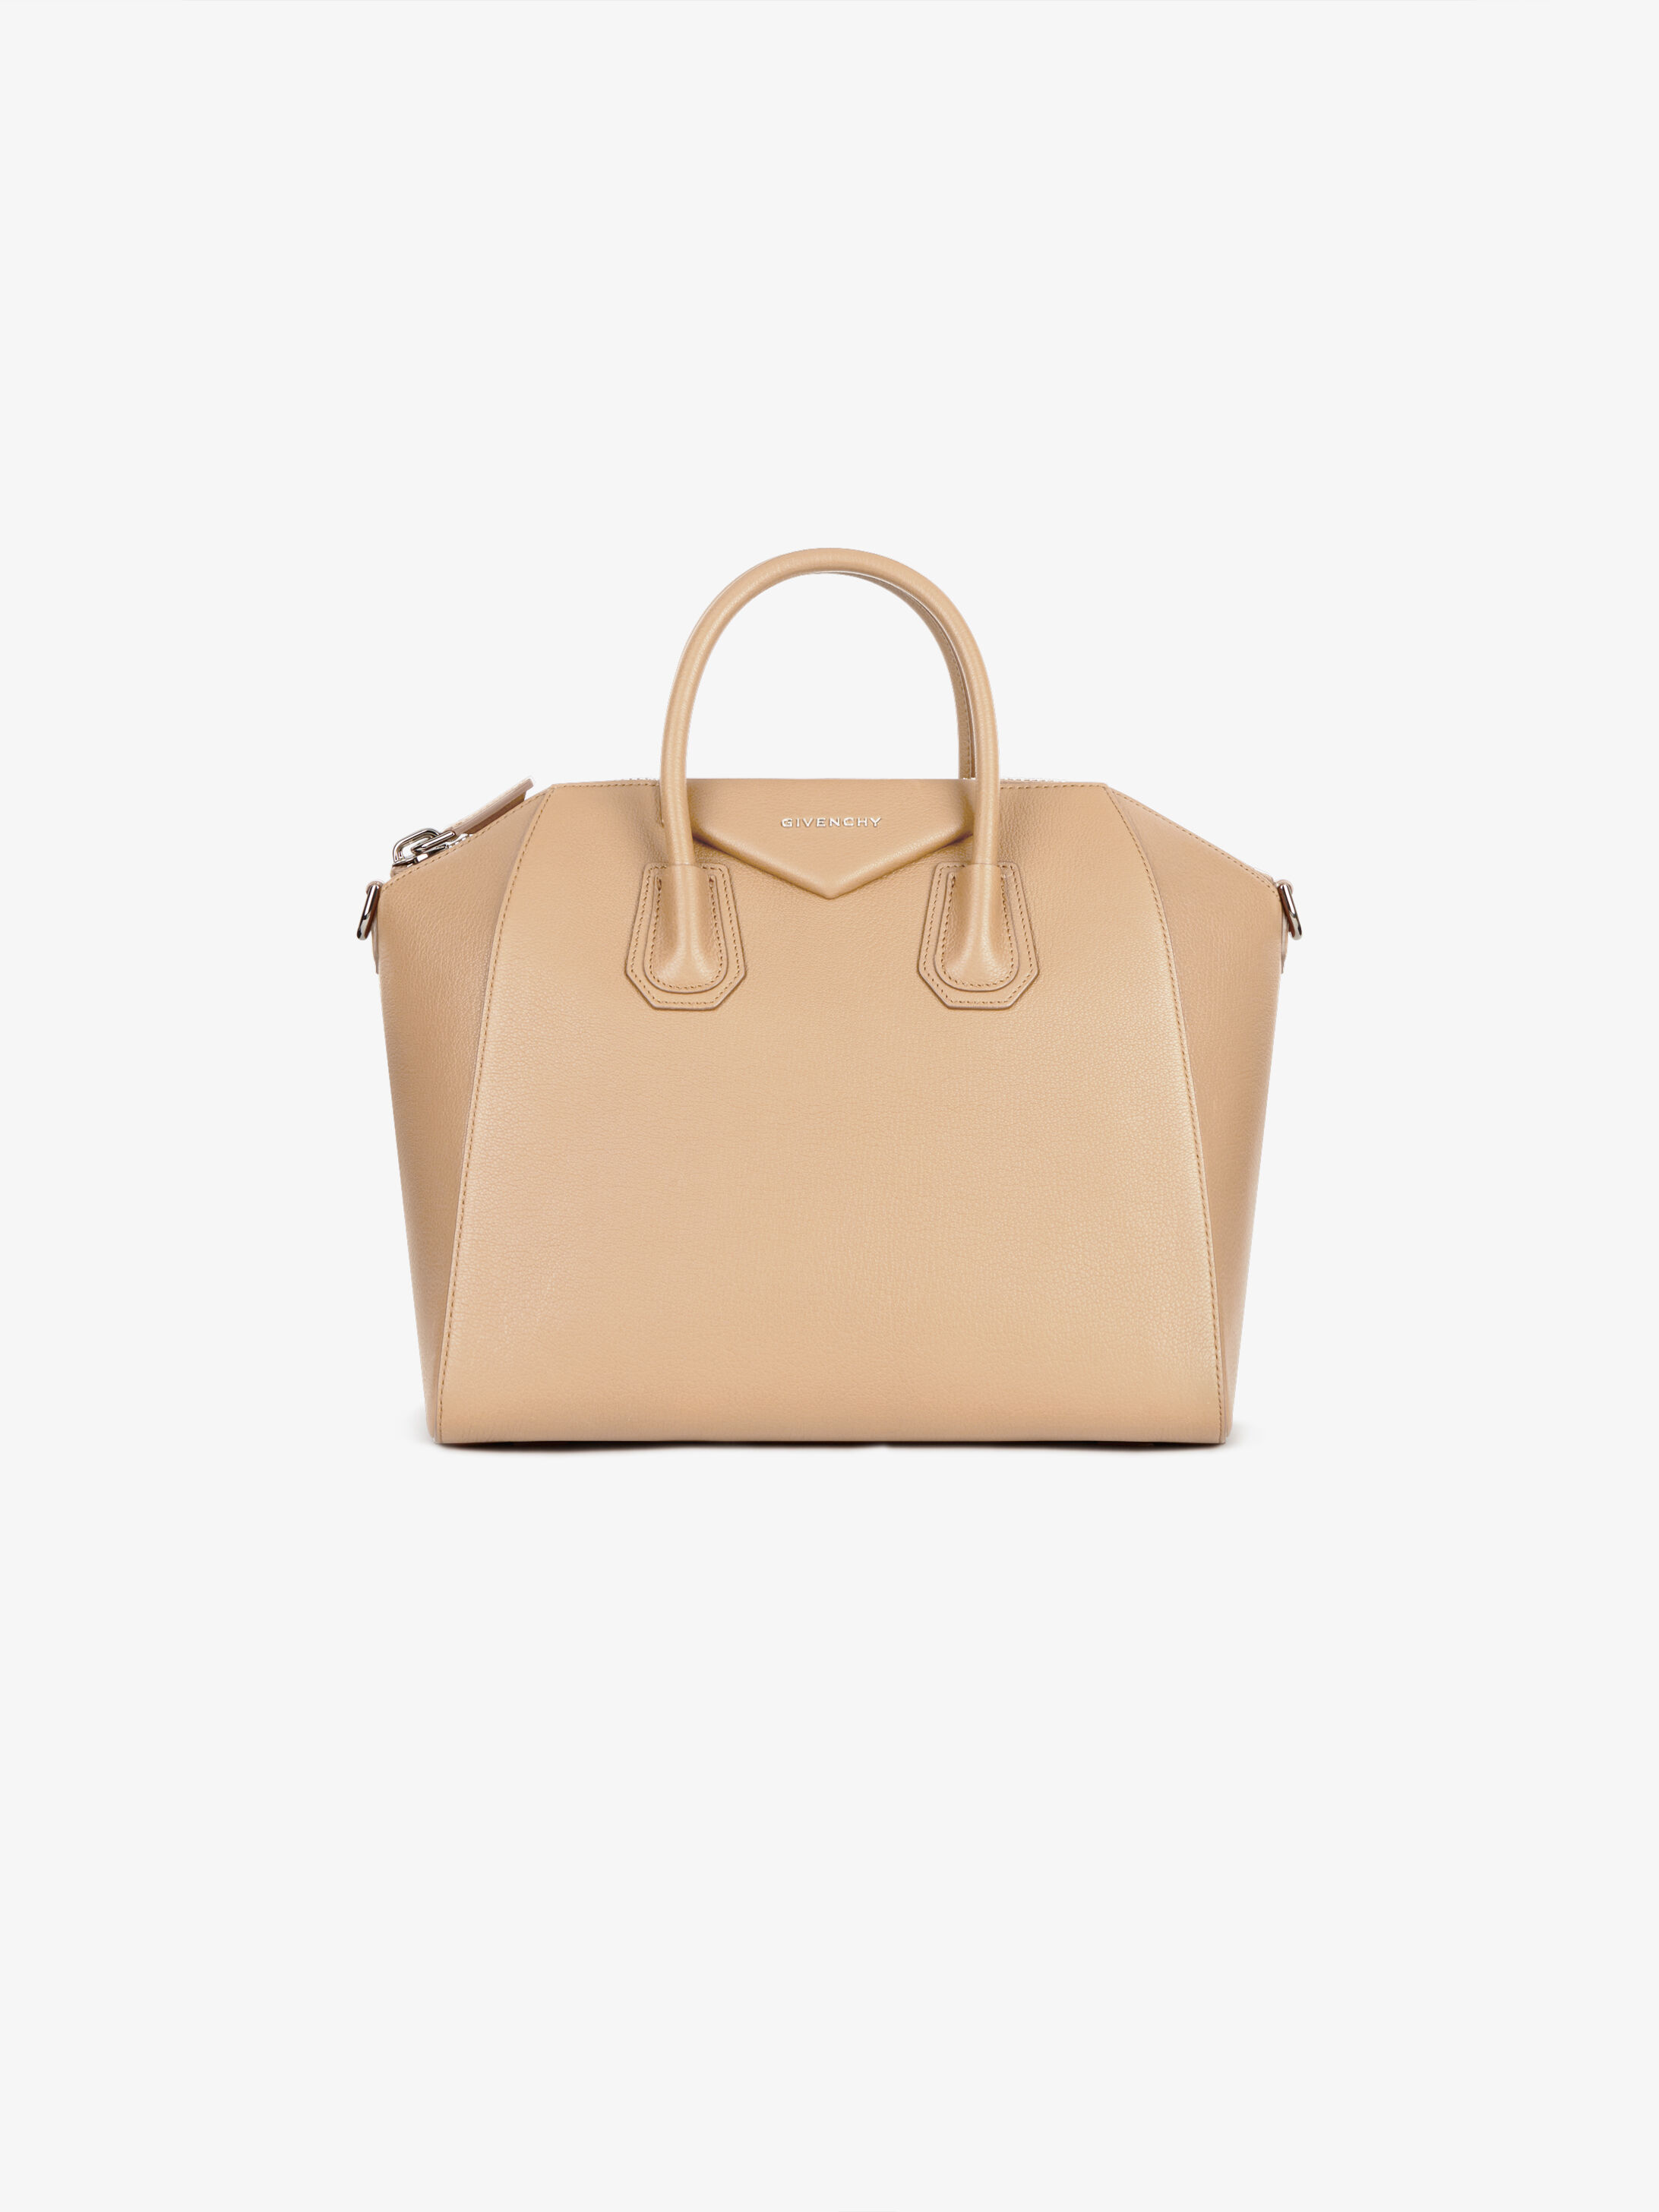 c23ca181025 Women's Antigona collection by Givenchy. | GIVENCHY Paris